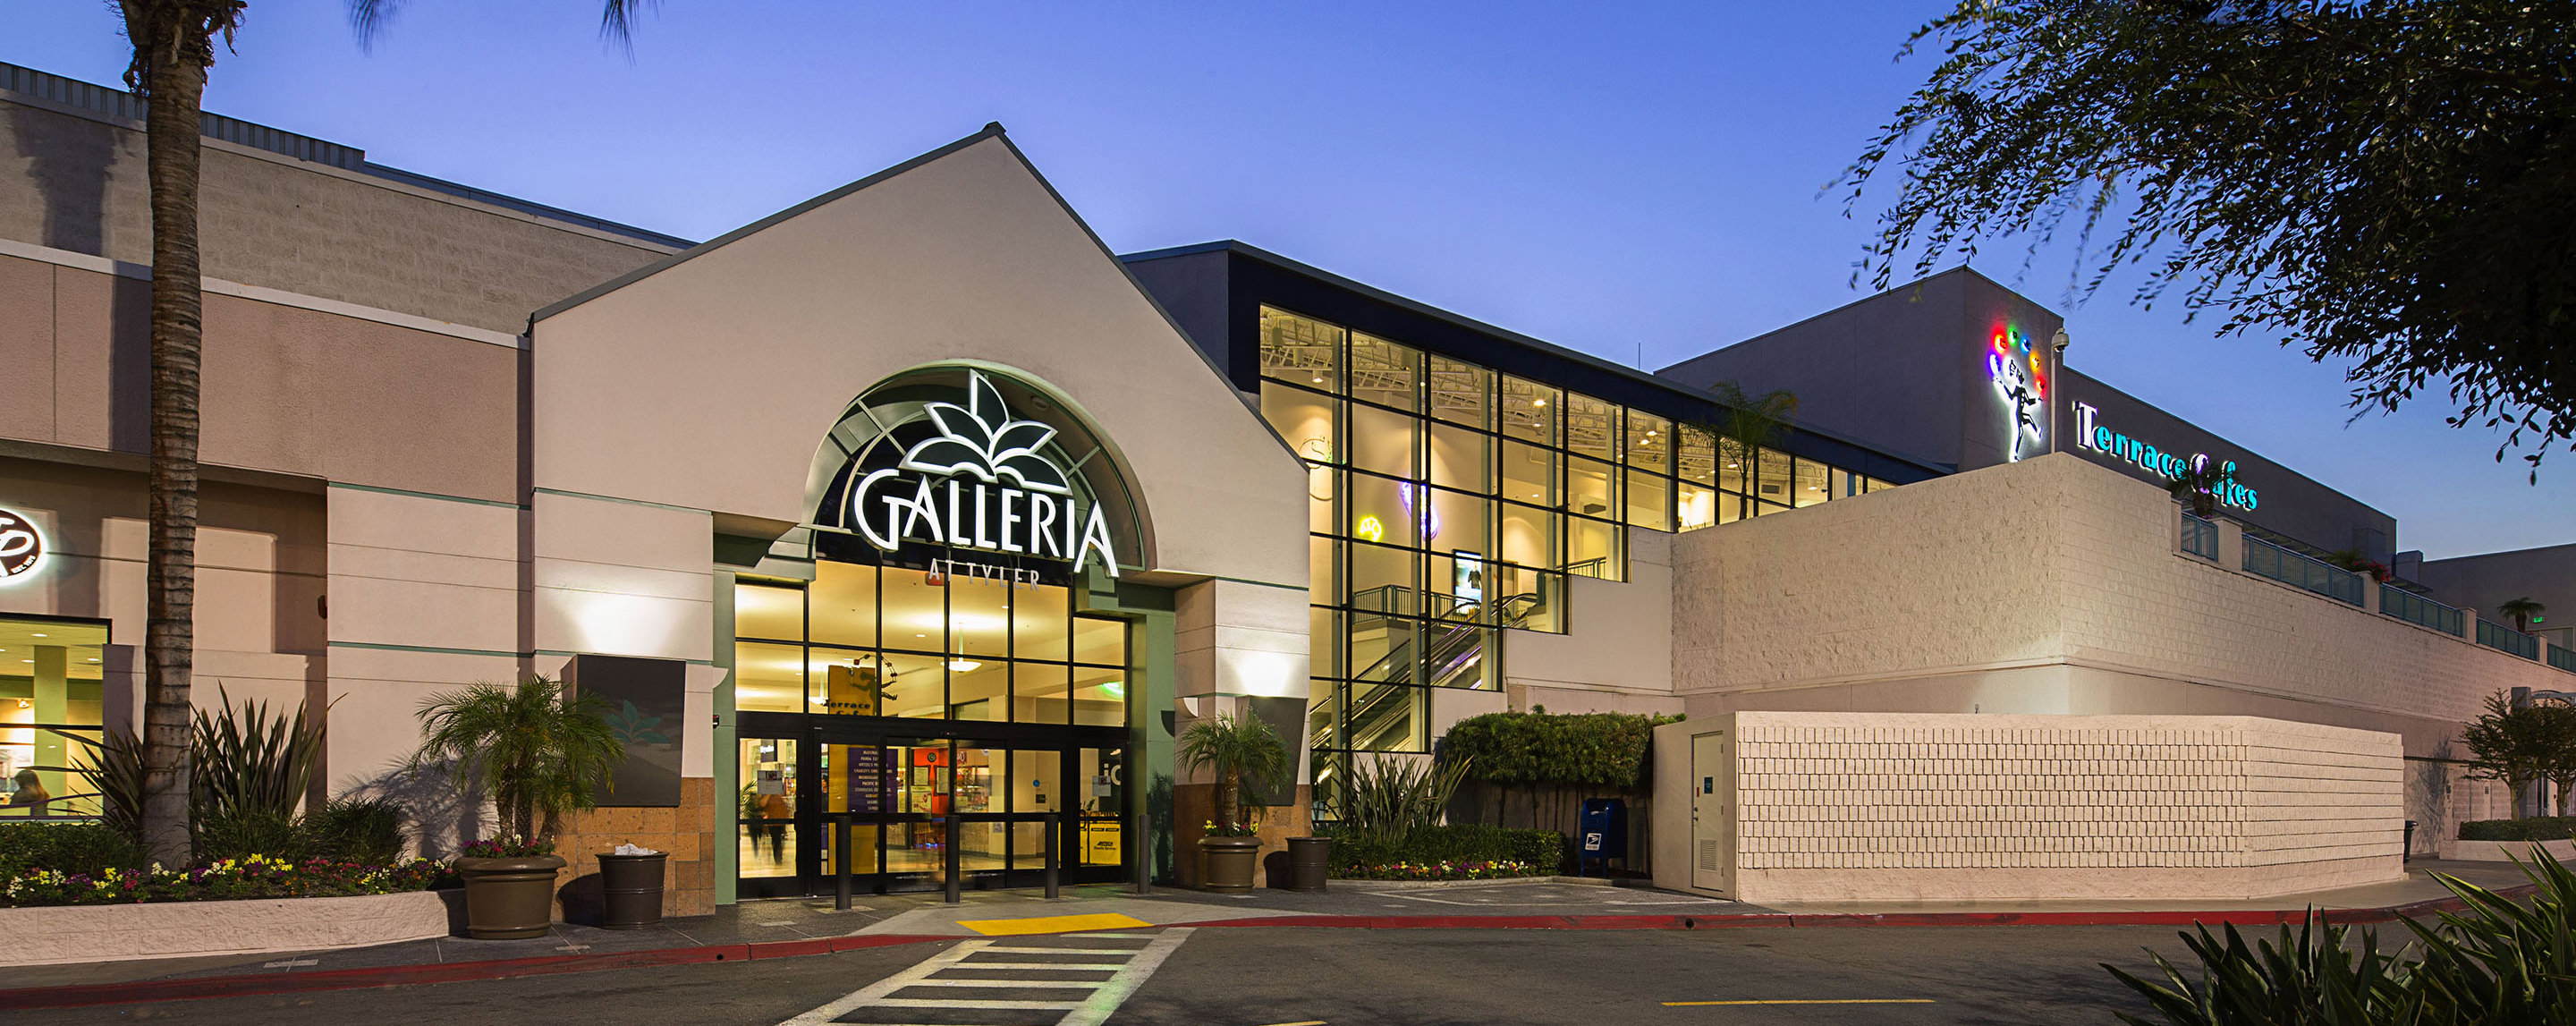 From across the street, the Galleria at Tyler sign is lit up to welcome shoppers and visitors to the property.